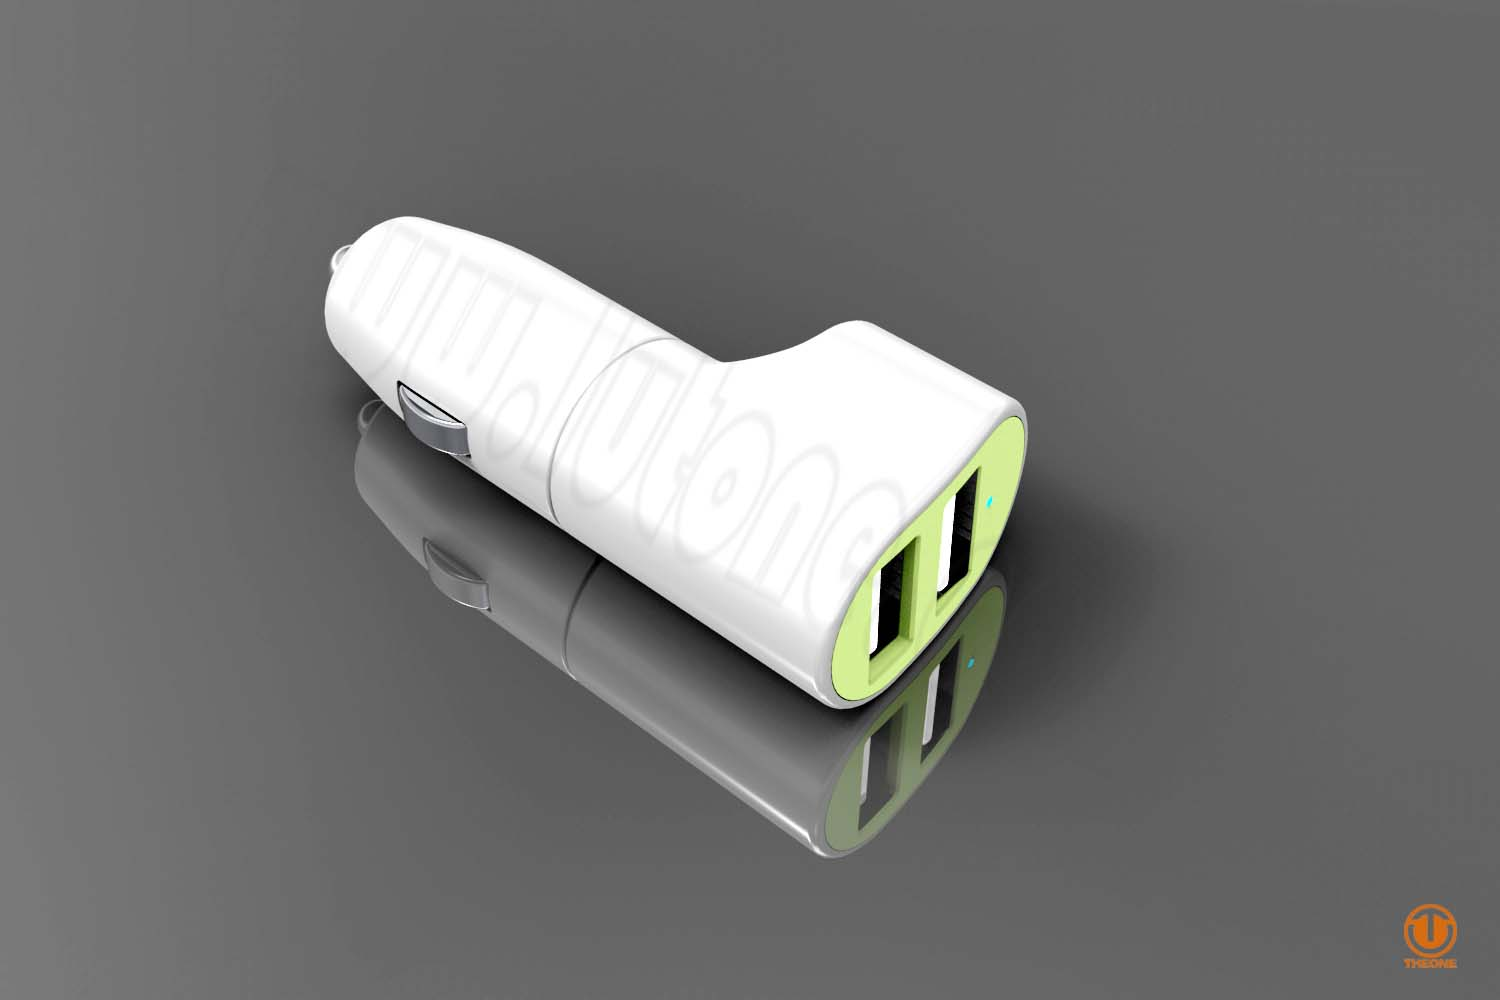 tc03a2-4 dual ports car charger